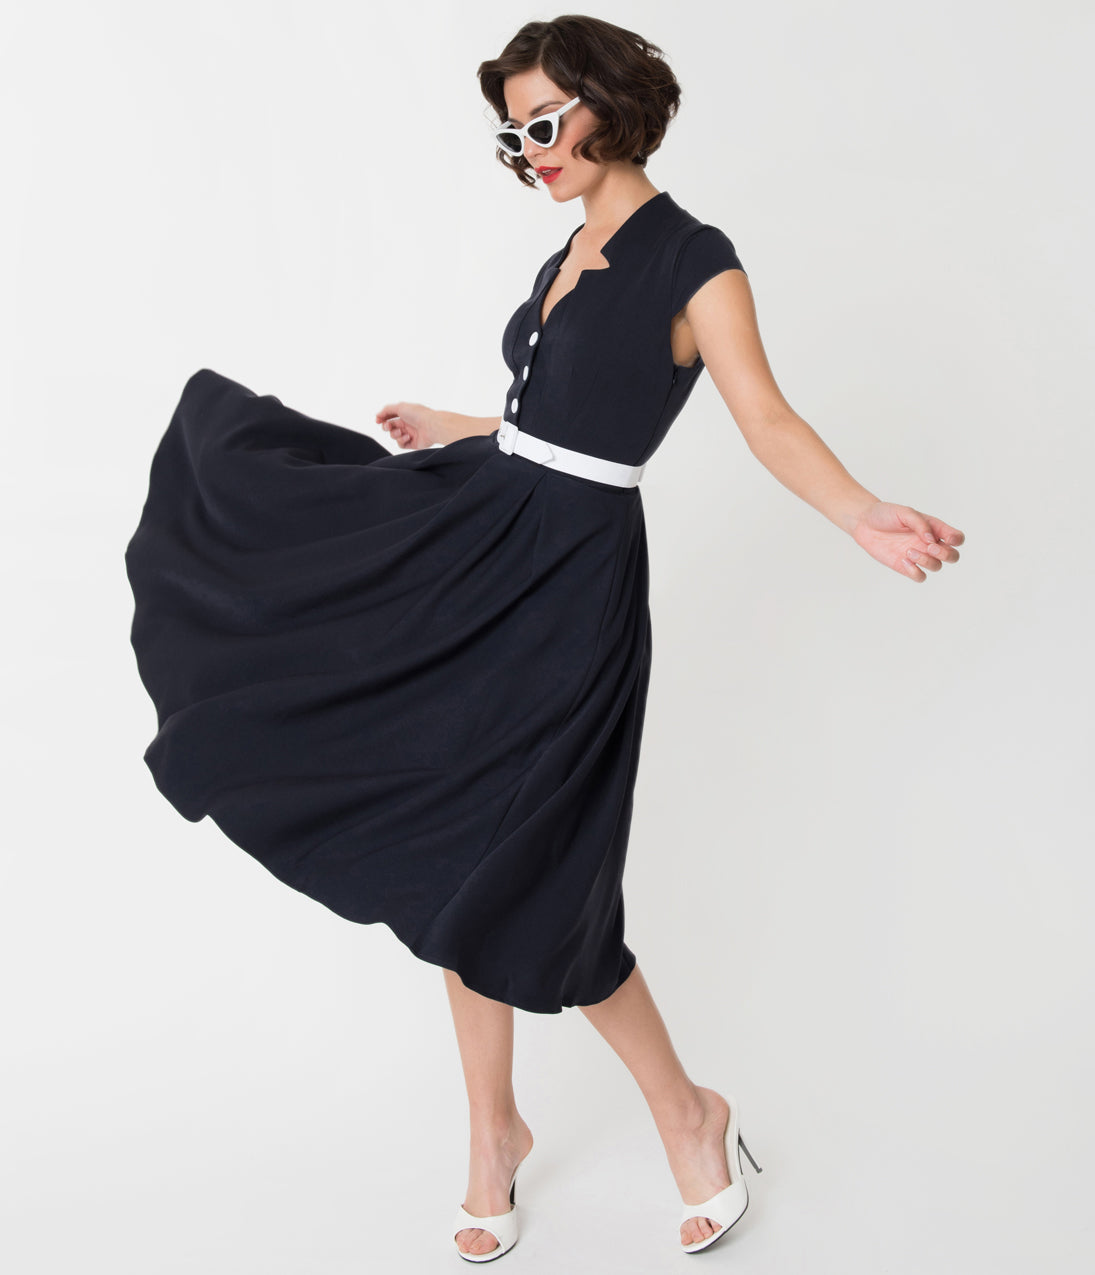 Vintage 50s Dresses: 8 Classic Retro Styles Miss Candy Floss 1950S Style Navy Blue Alessia-Lee Swing Dress $118.00 AT vintagedancer.com